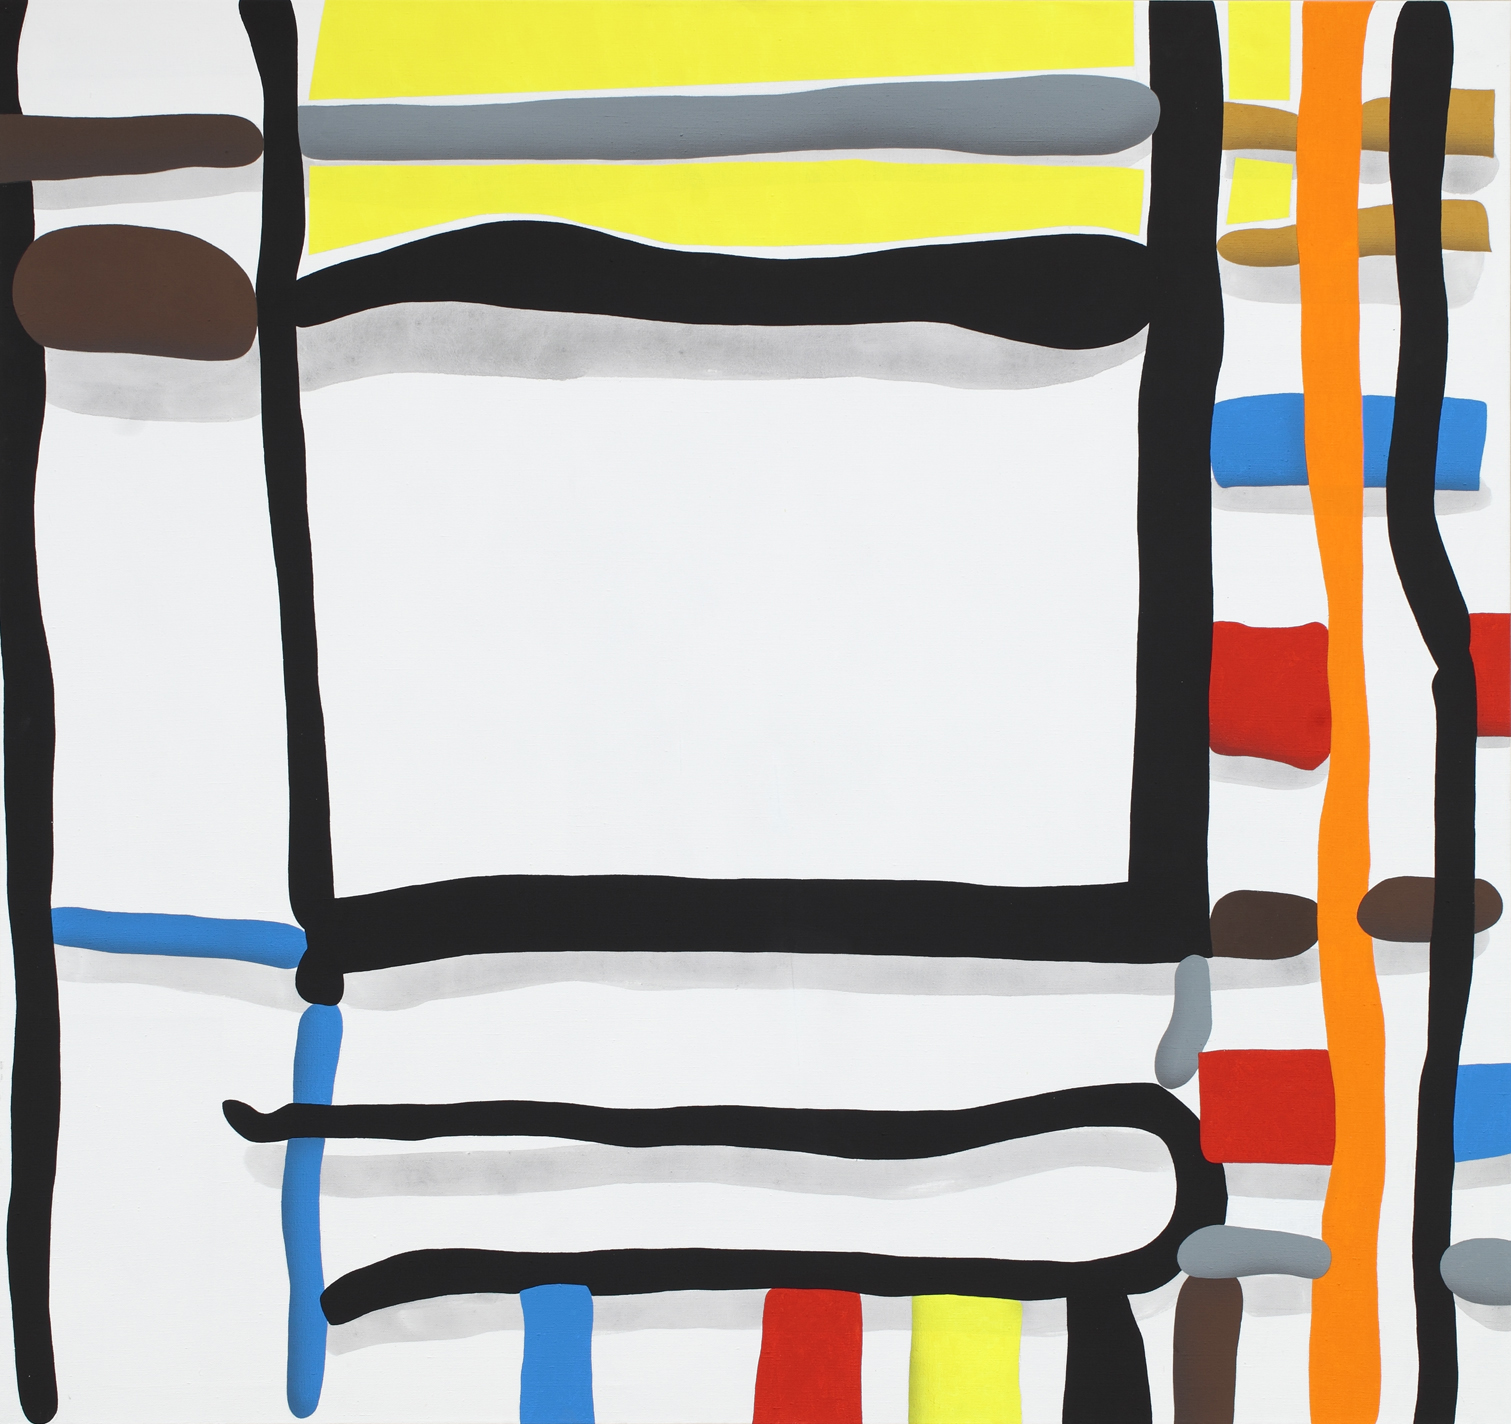 Composition No.9, 2011, acrylic on canvas, 150 x 160 cm